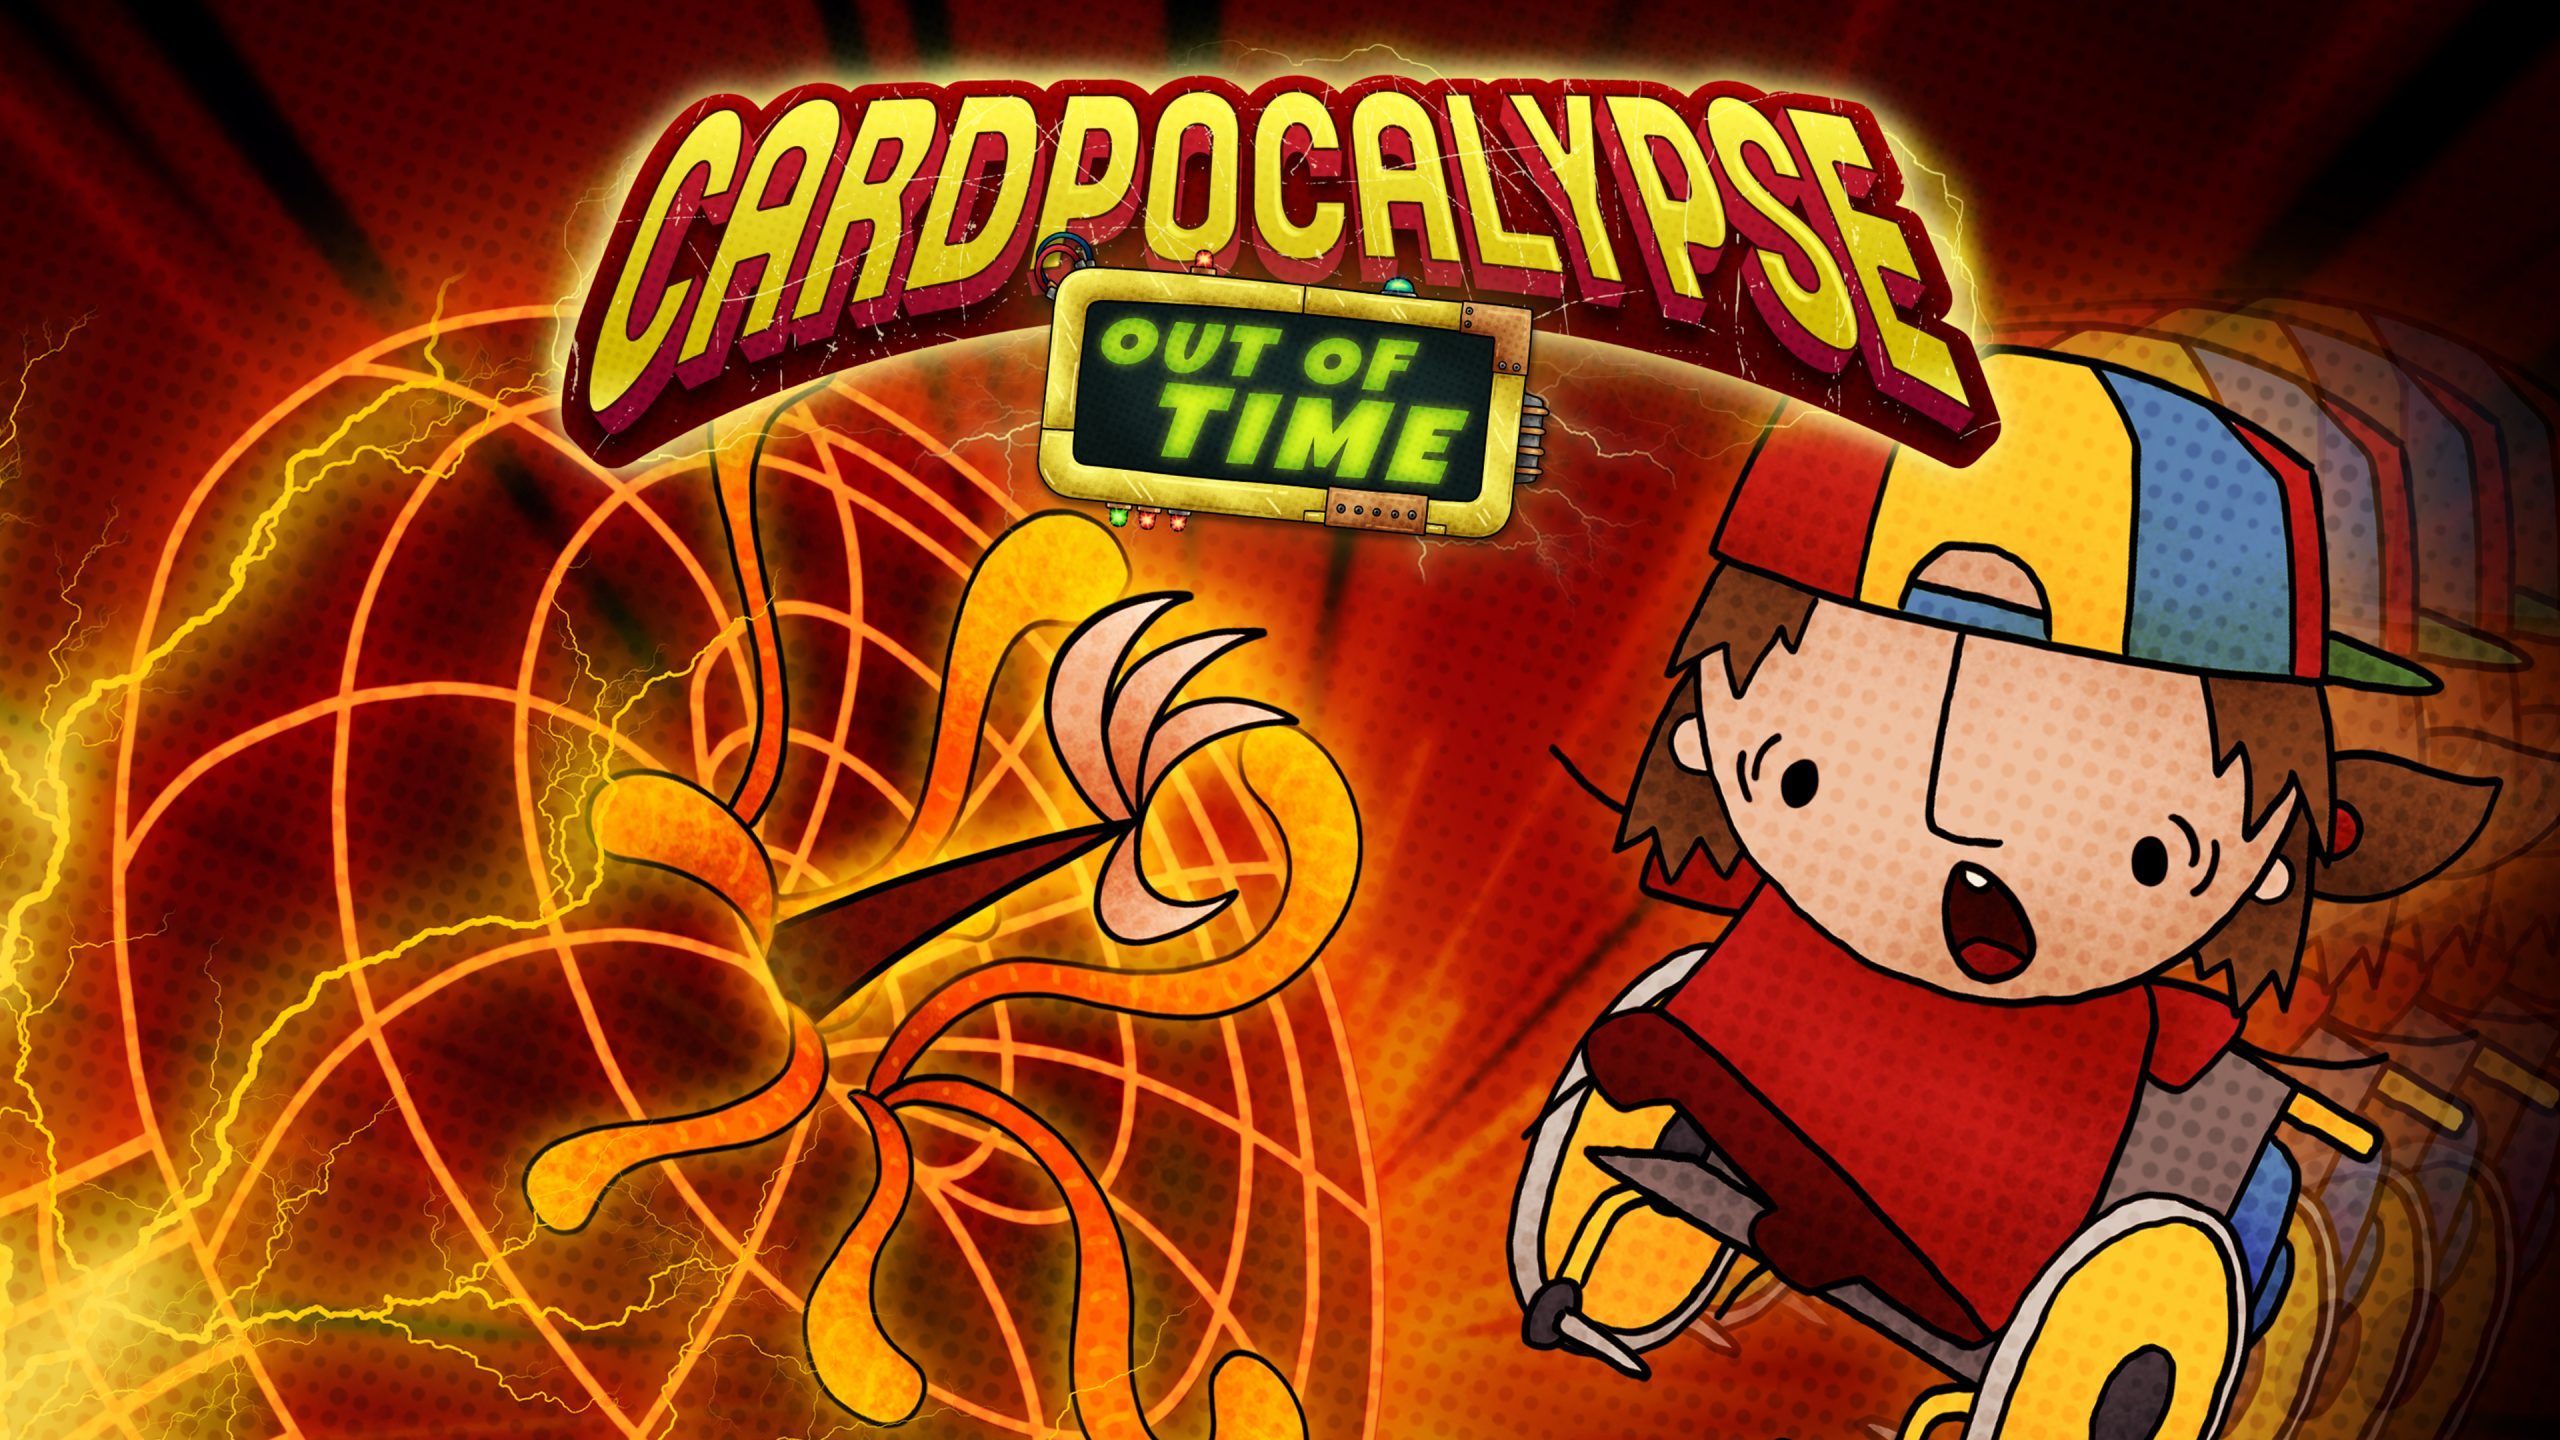 Cardpocalypse Out of Time logo and artwork